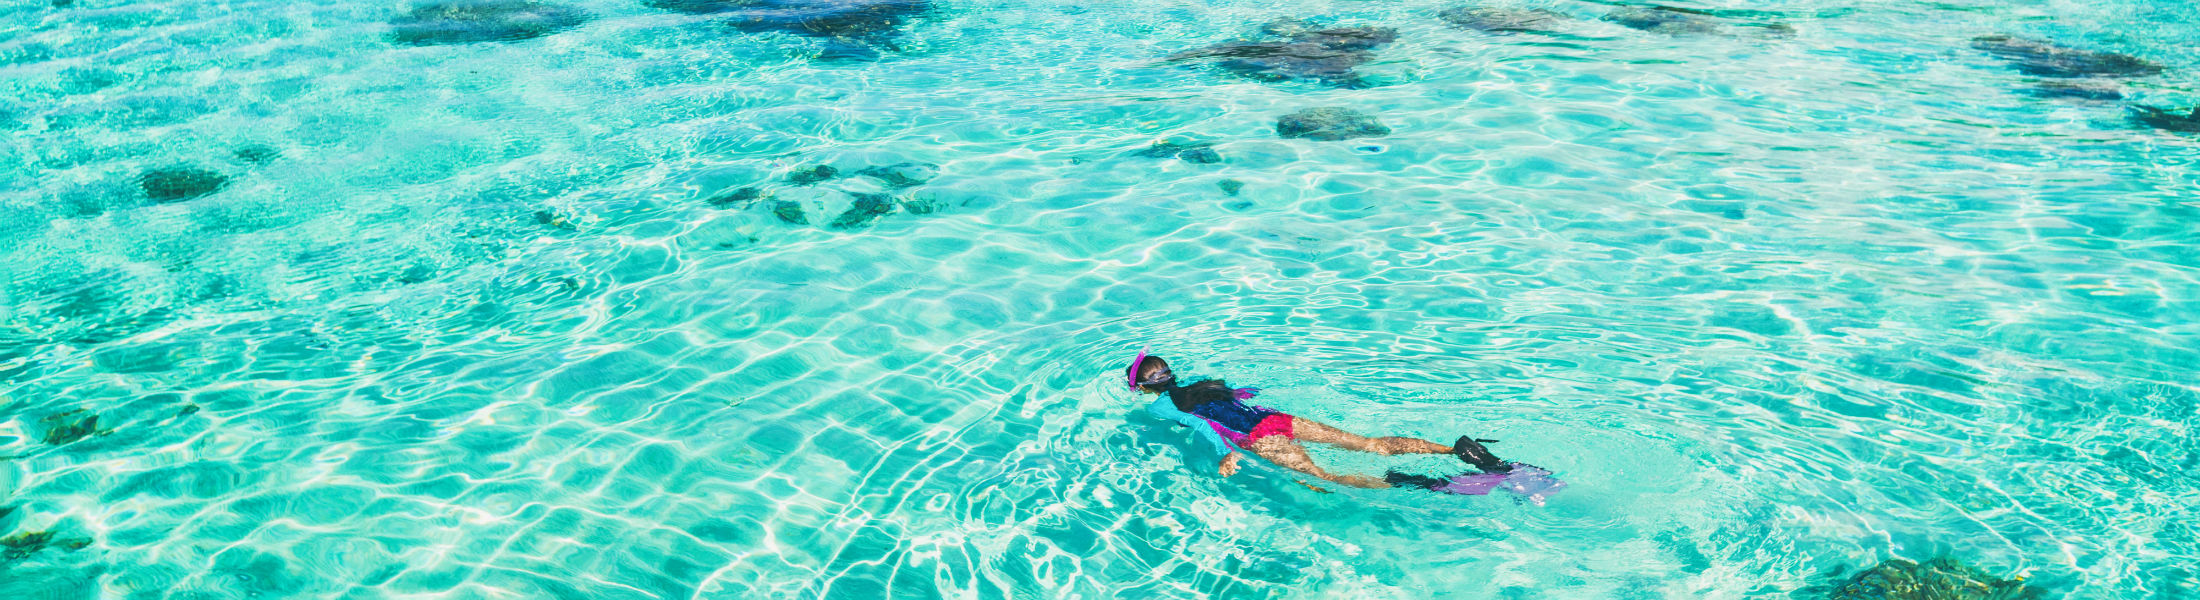 woman swimming snorkelling in paradise clear water